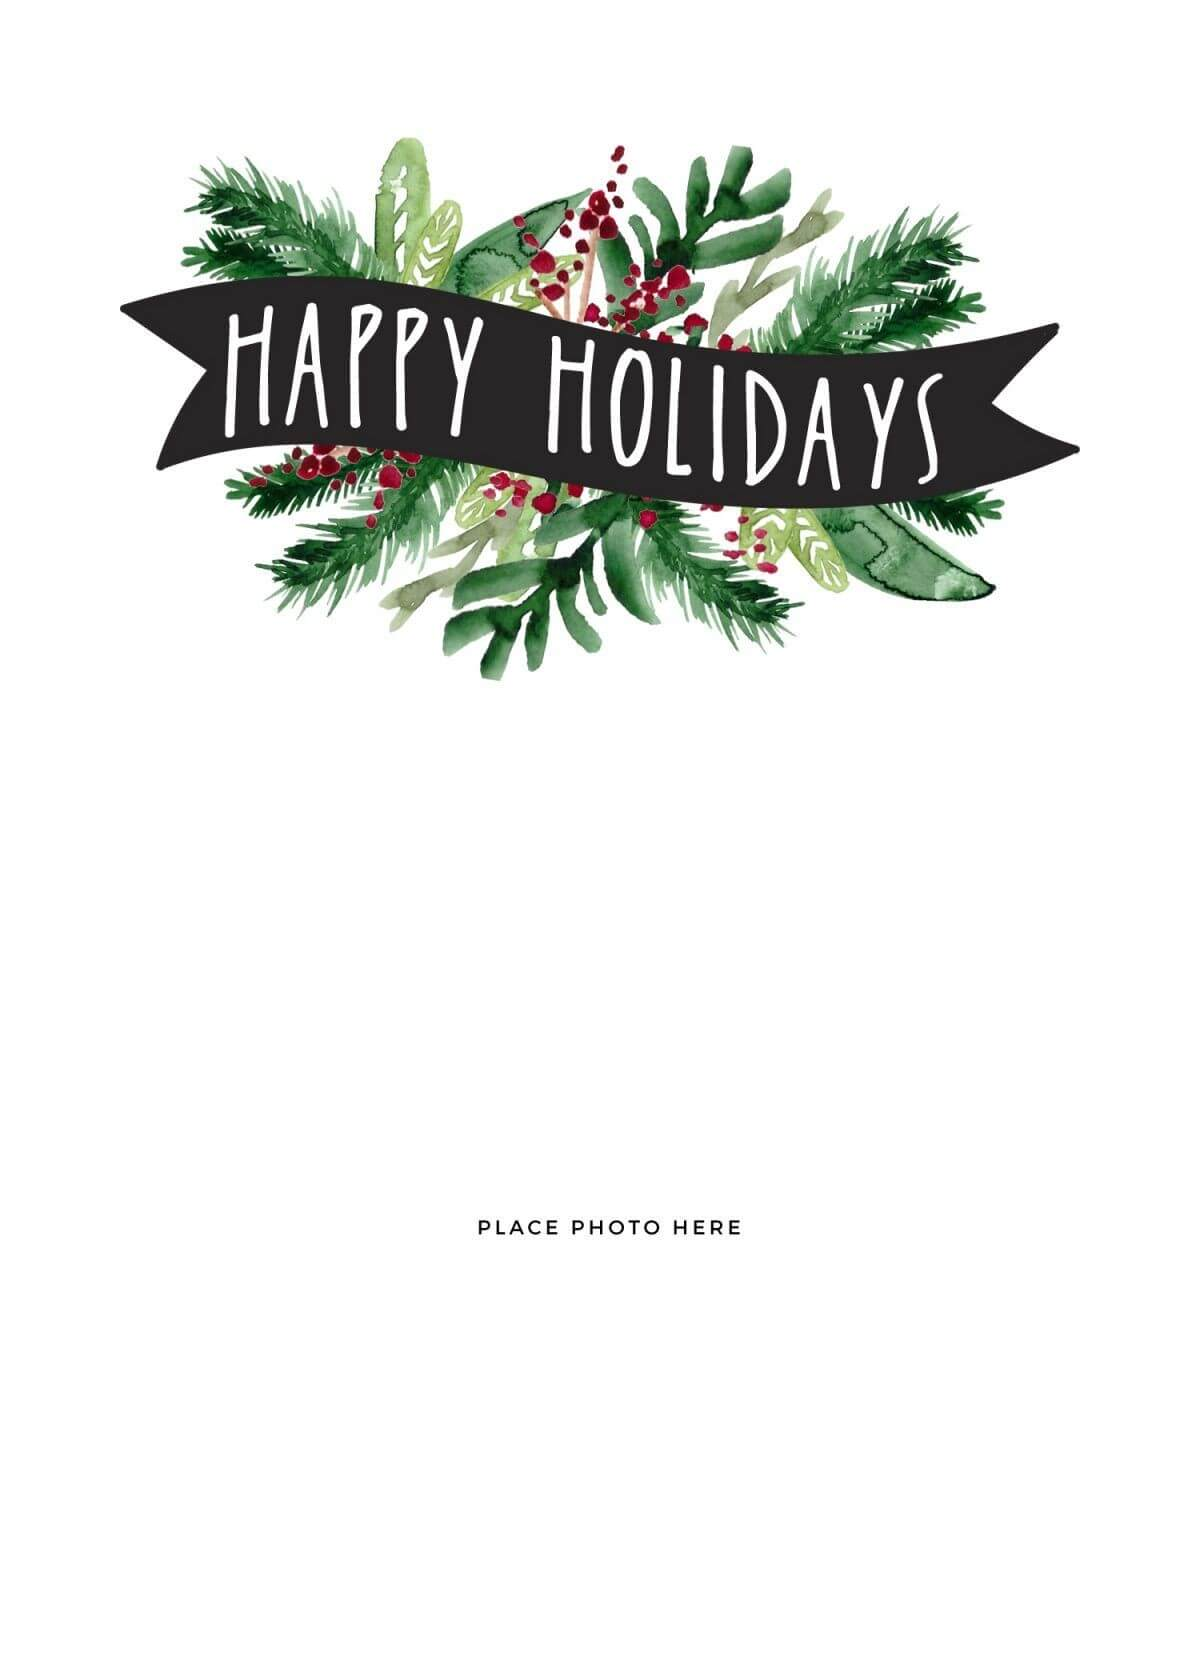 Make Your Own Photo Christmas Cards (For Free!) | Holidays Intended For Happy Holidays Card Template